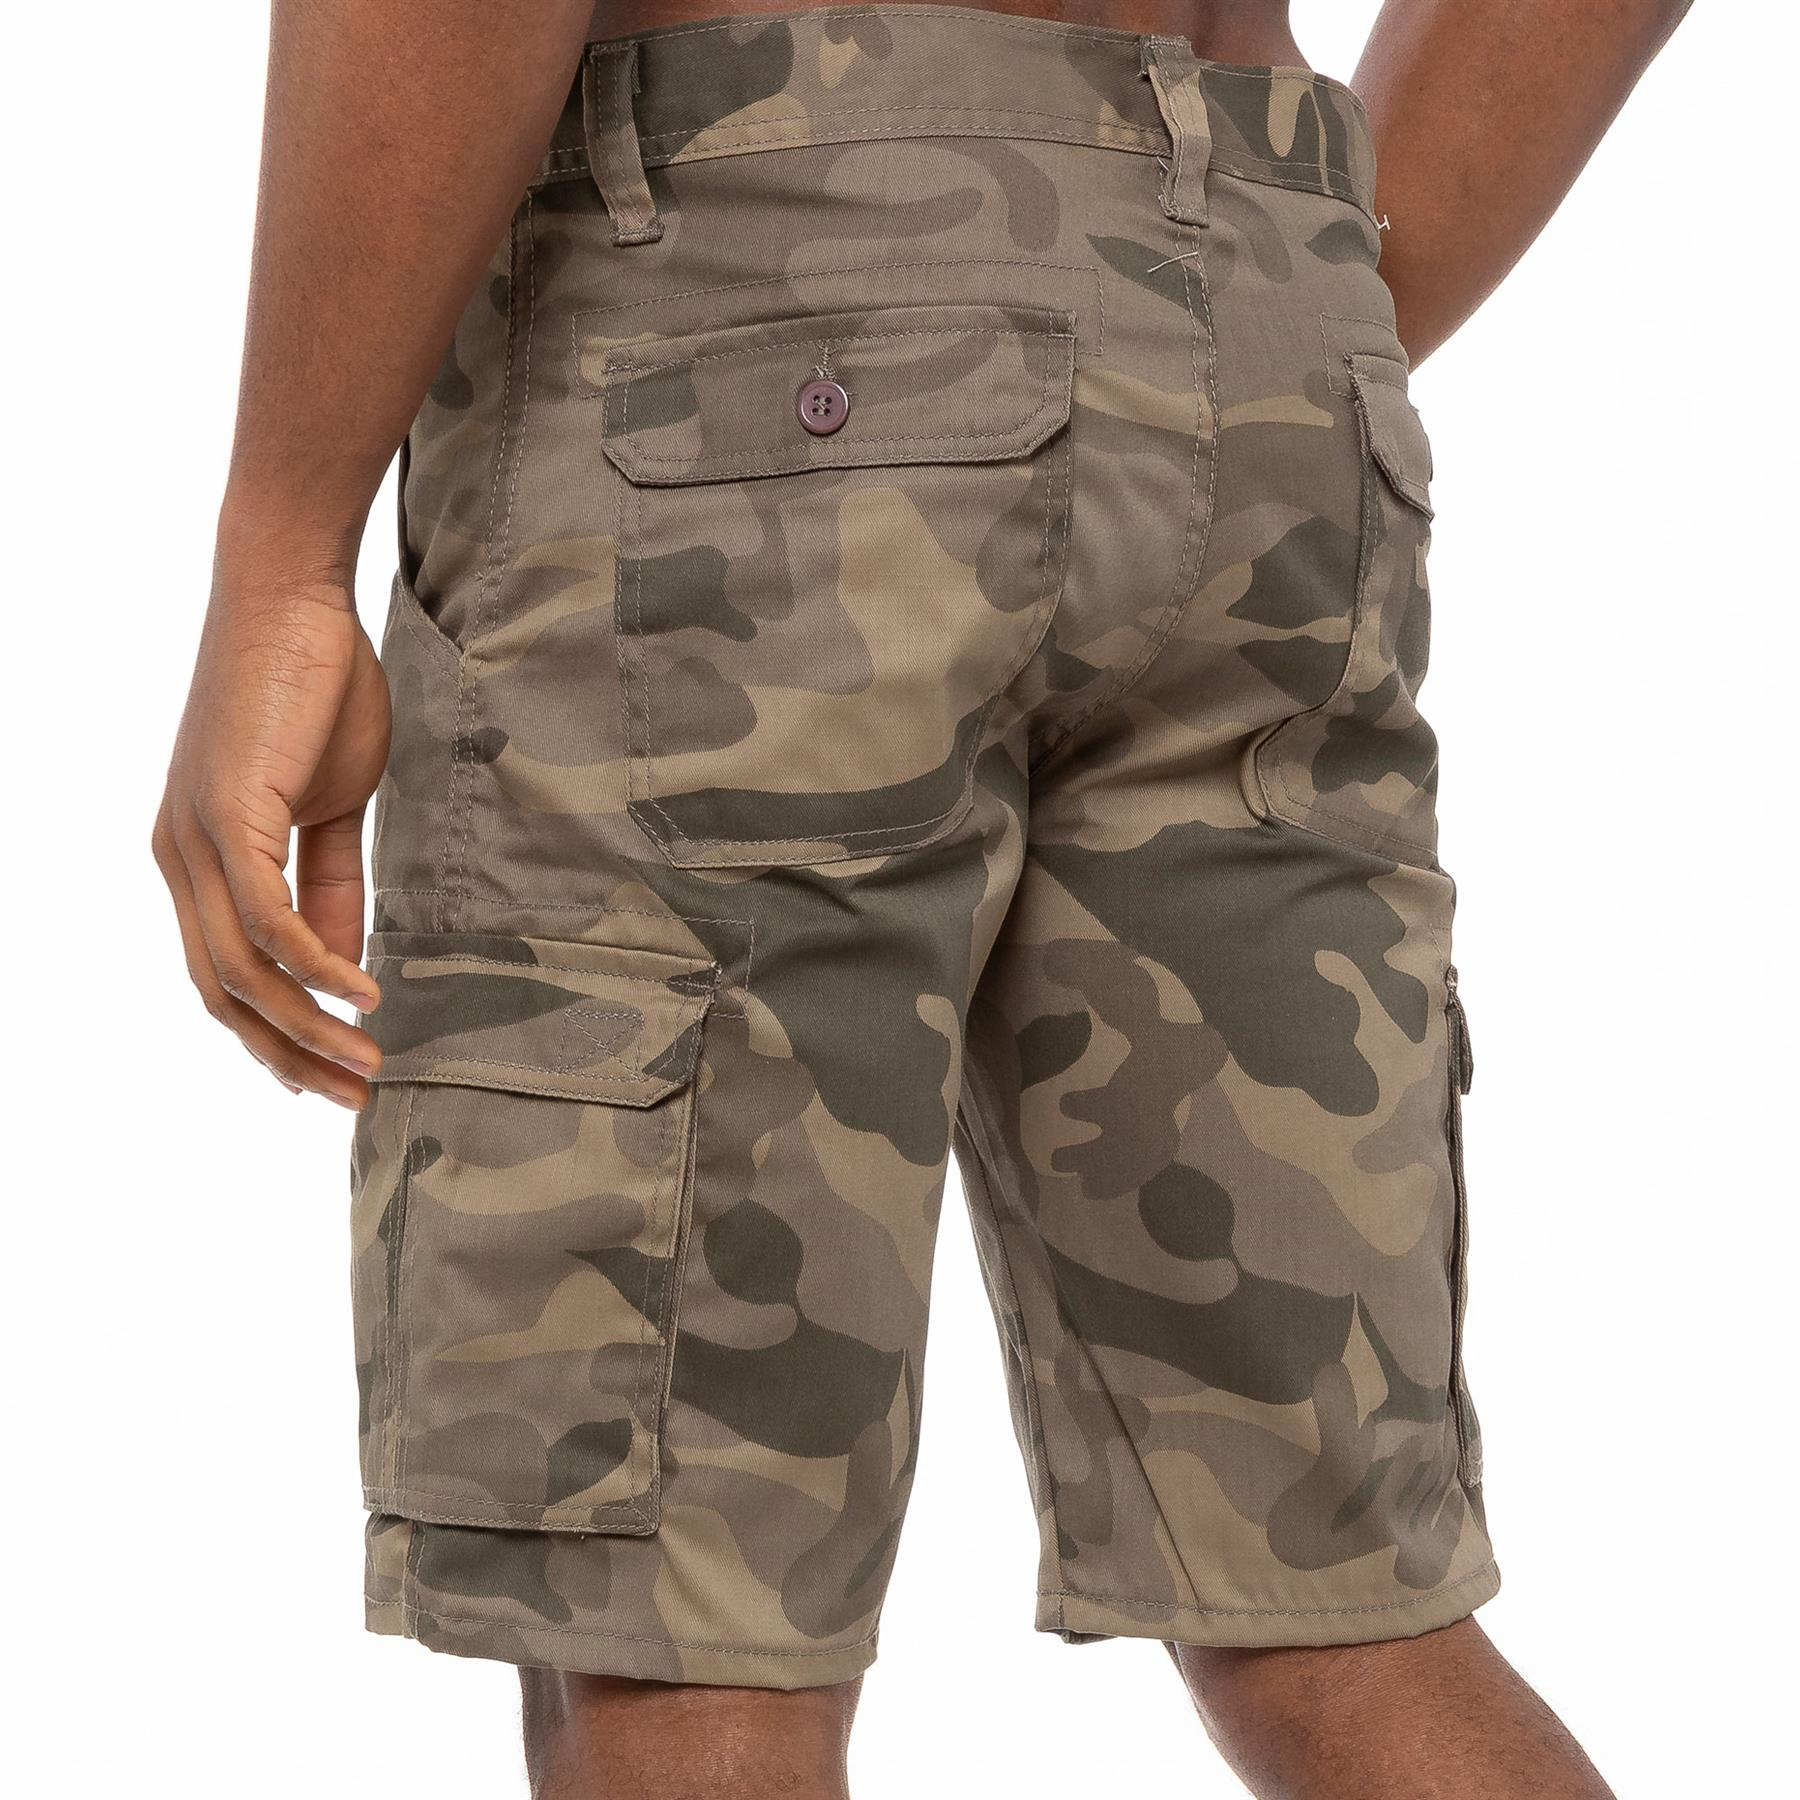 thumbnail 24 - Kruze Jeans Mens Army Combat Shorts Camouflage Cargo Casual Camo Work Half Pants